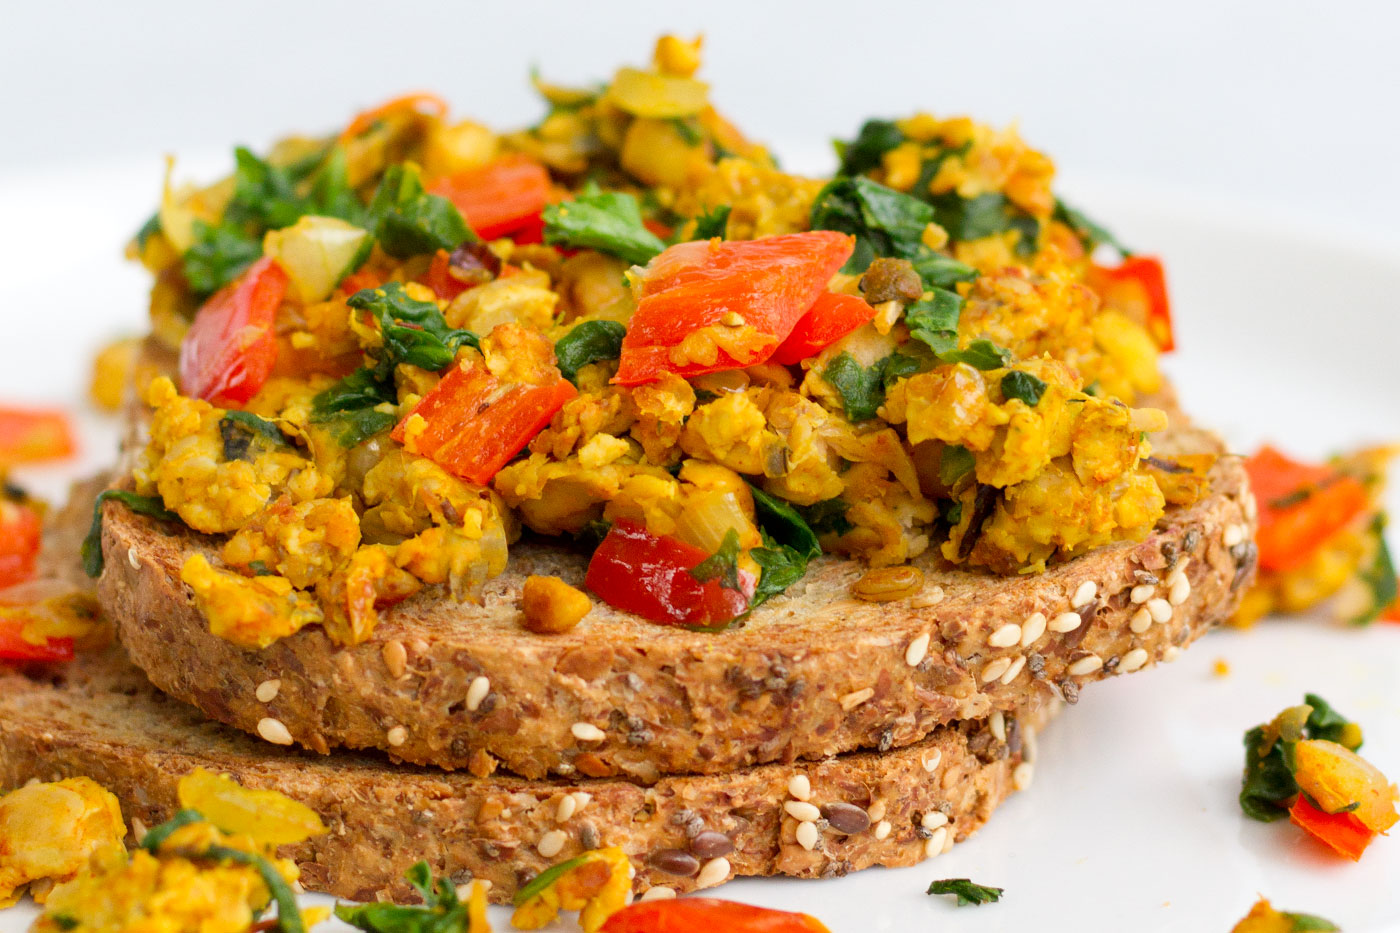 A simple lunch Smoky tempeh scramble recipe for vegetarian